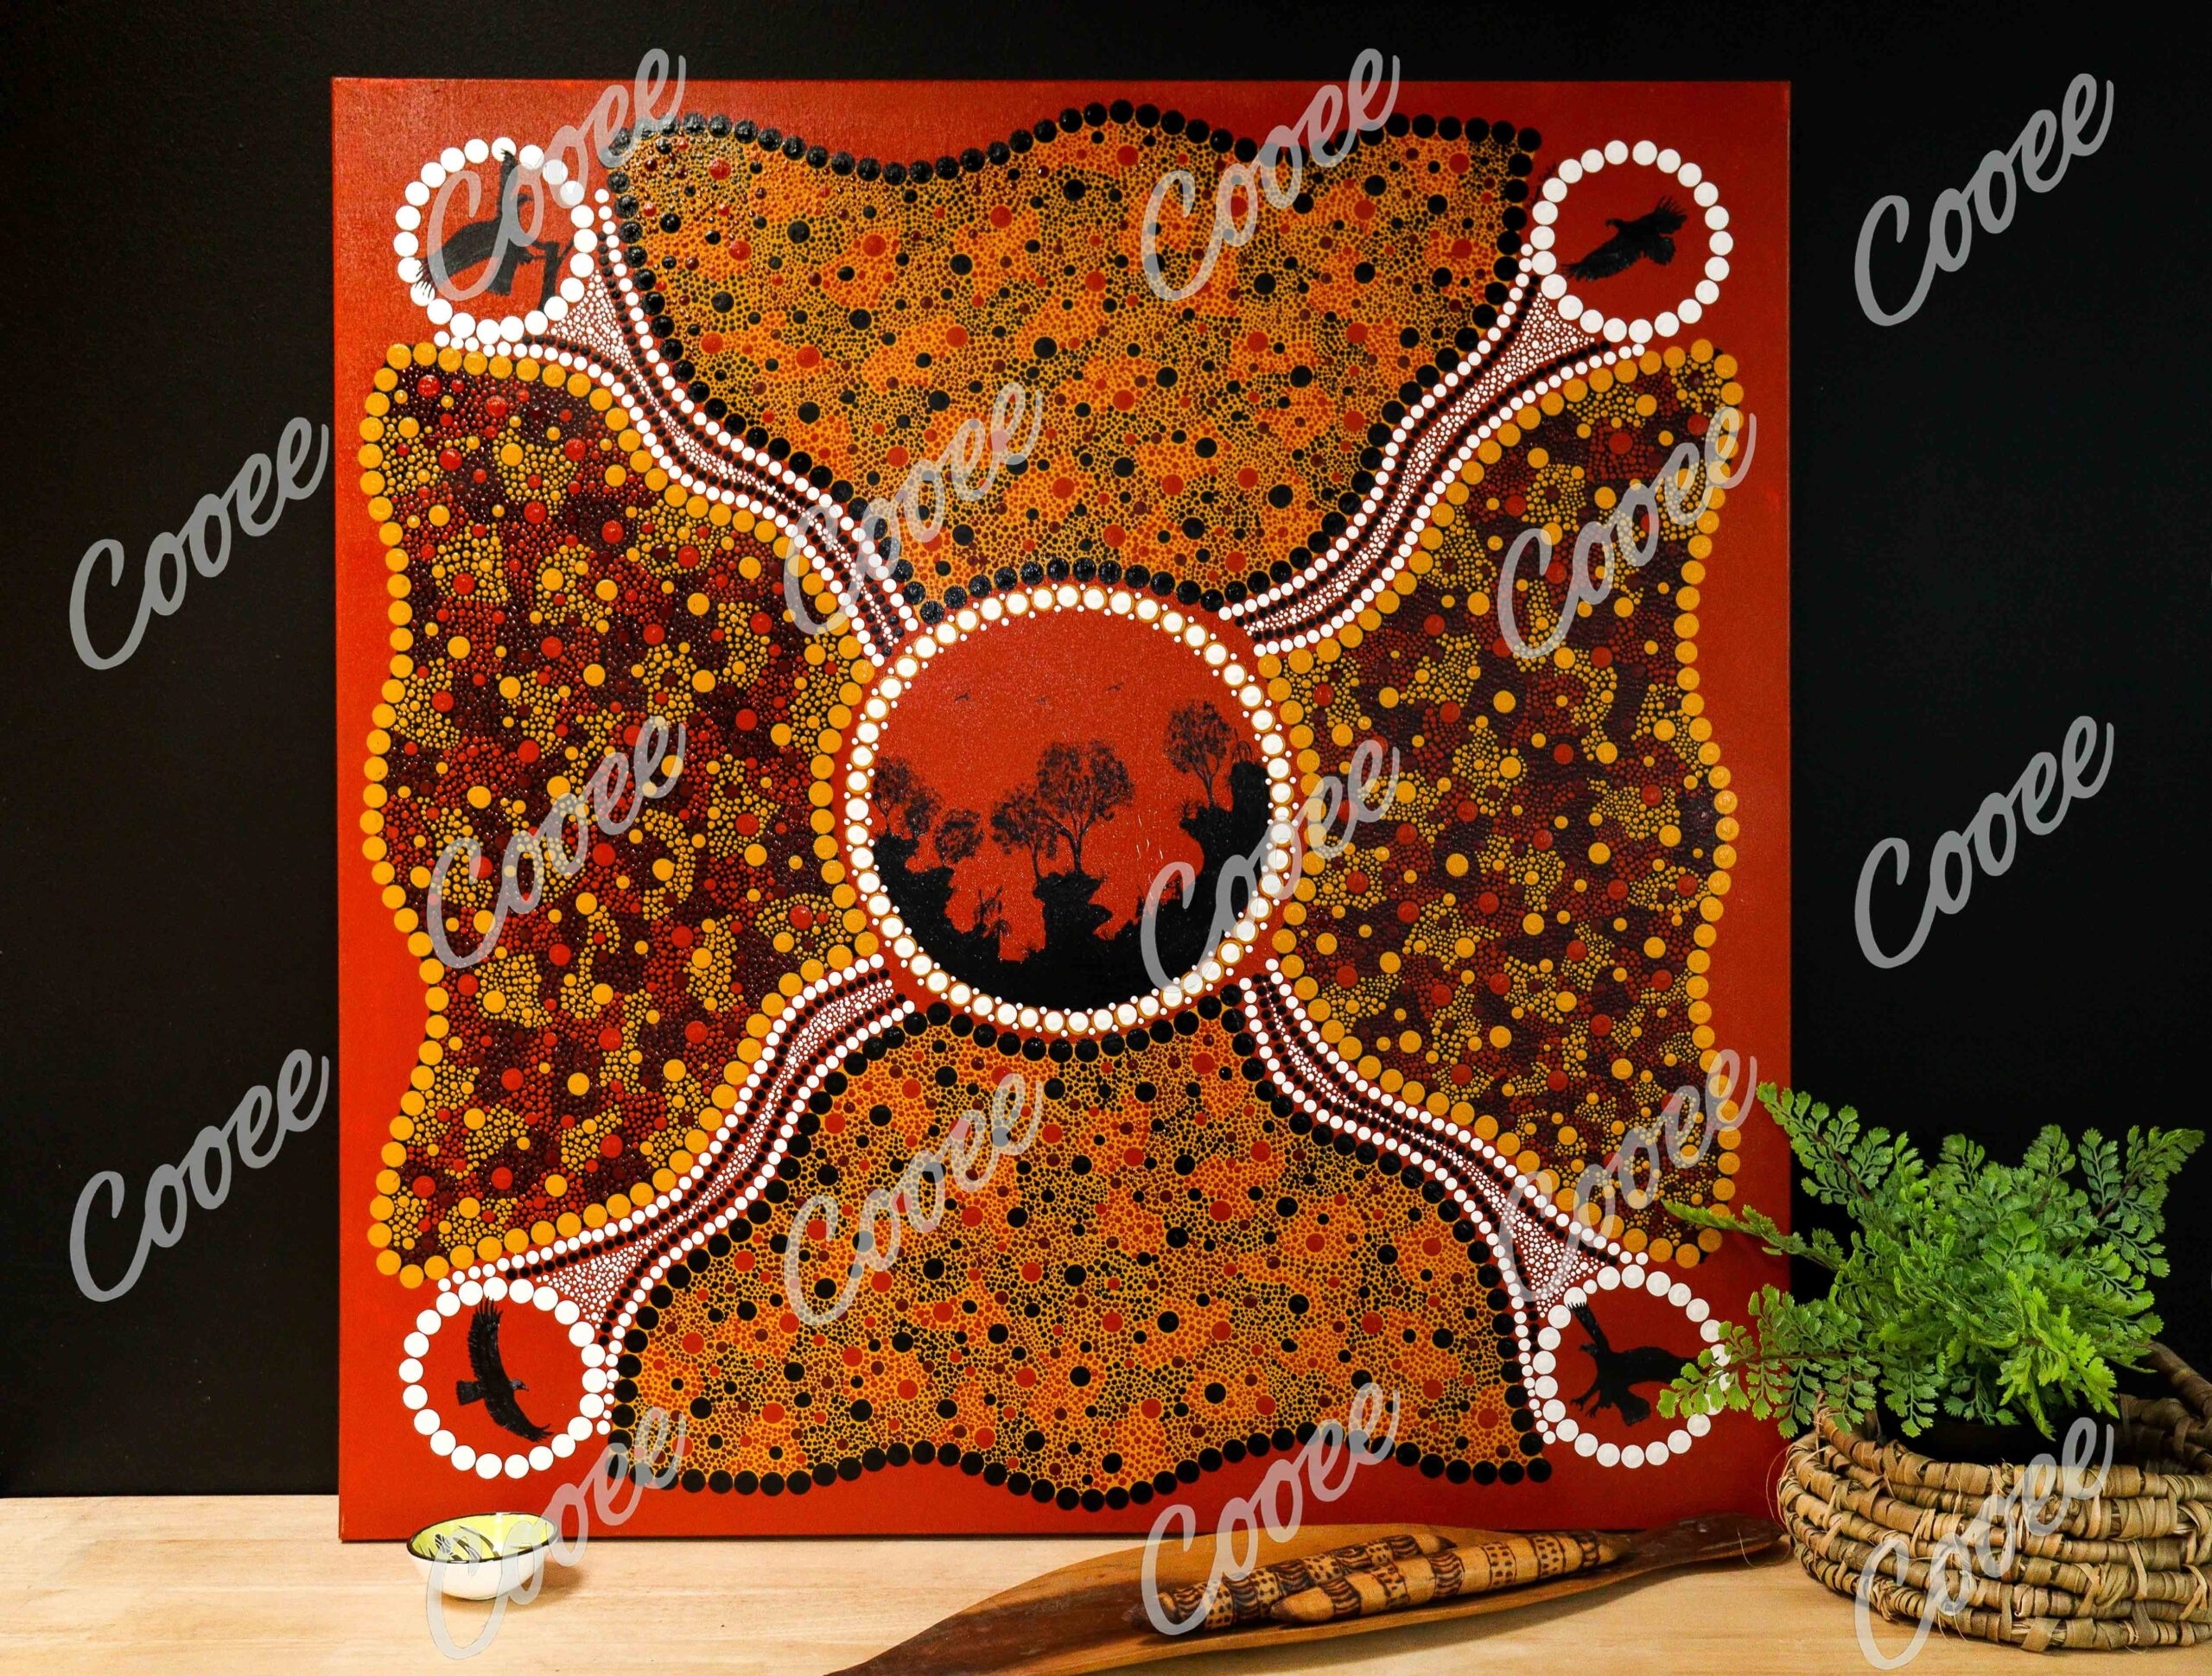 Cooee-Cafe-Original-Indigenous-Painting13